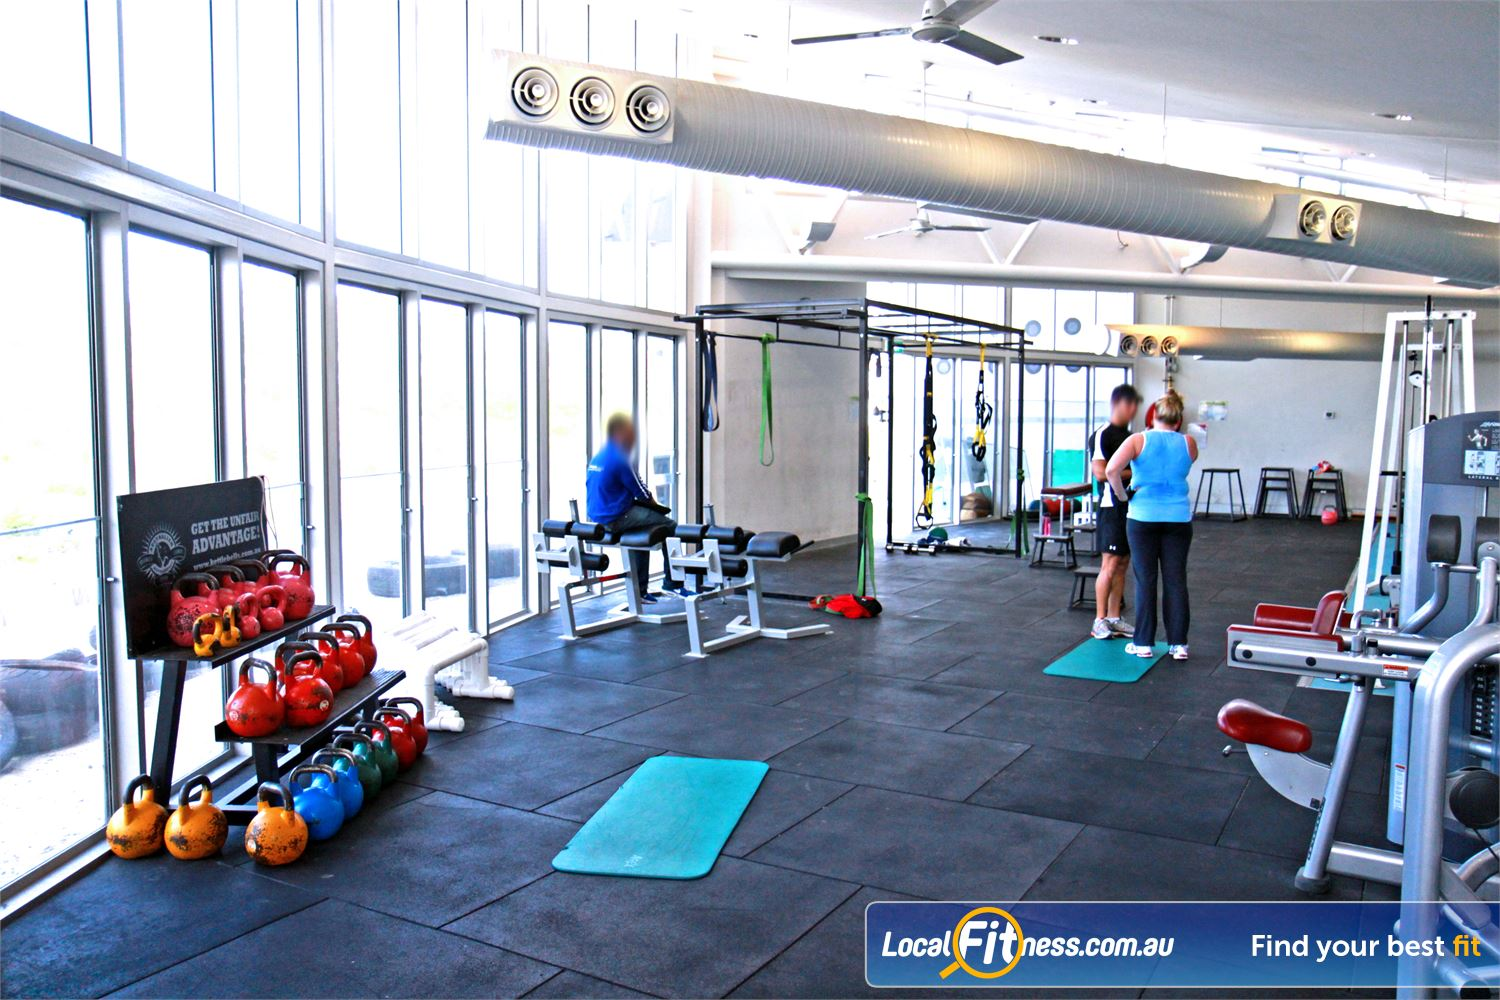 Ascot Vale Leisure Centre Ascot Vale Specialised and dedicated strength and crossfit training facility.